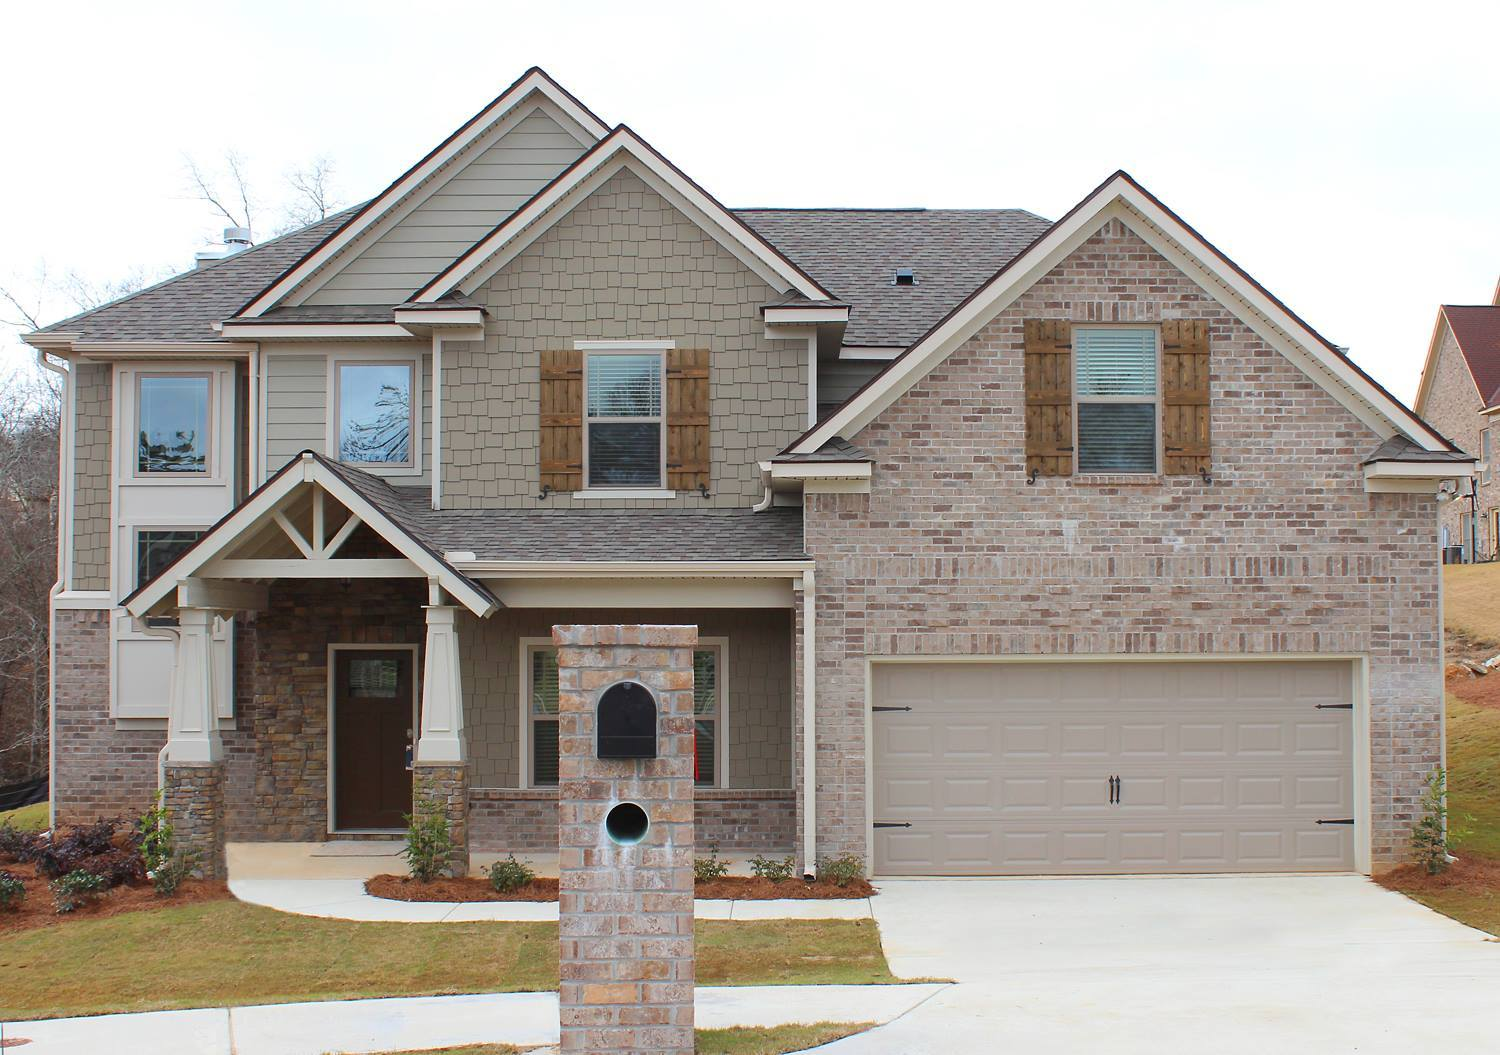 Single Family for Active at North Ivy Park - Chestnut - Georgia 4615 Wisteria Lane Fortson, Georgia 31808 United States